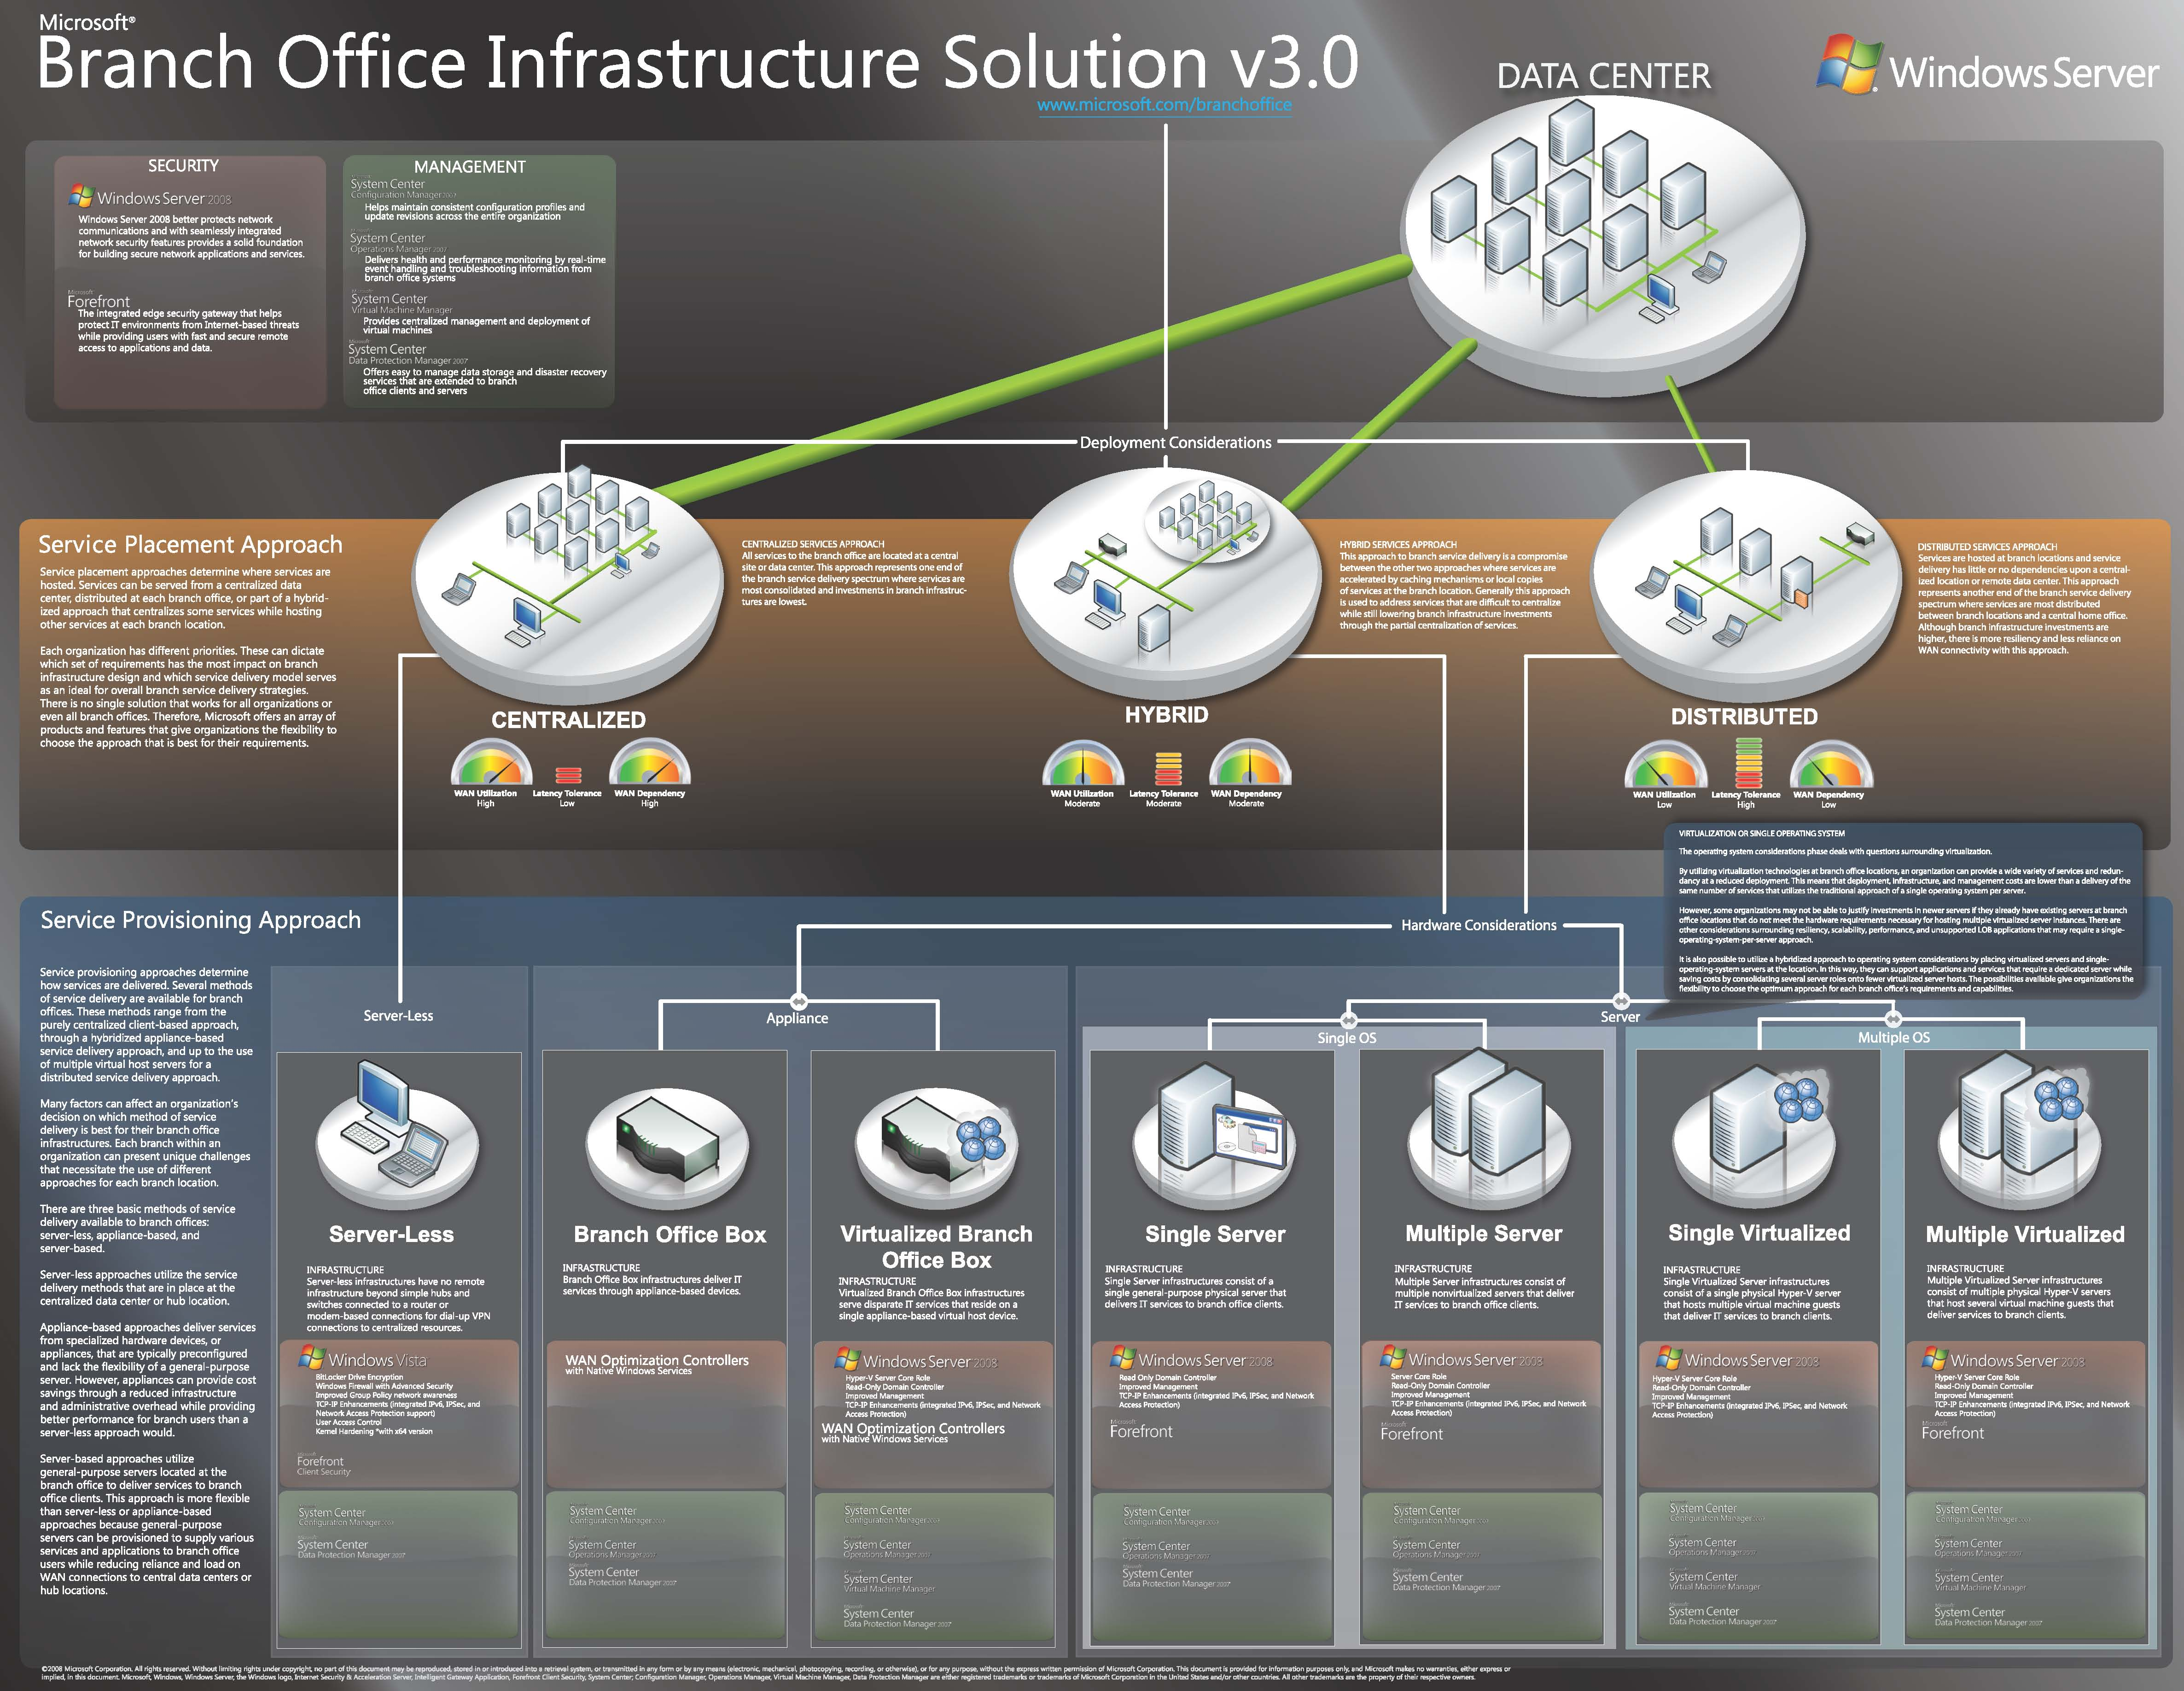 Microsoft Branch Office Infrastruscure Solutions